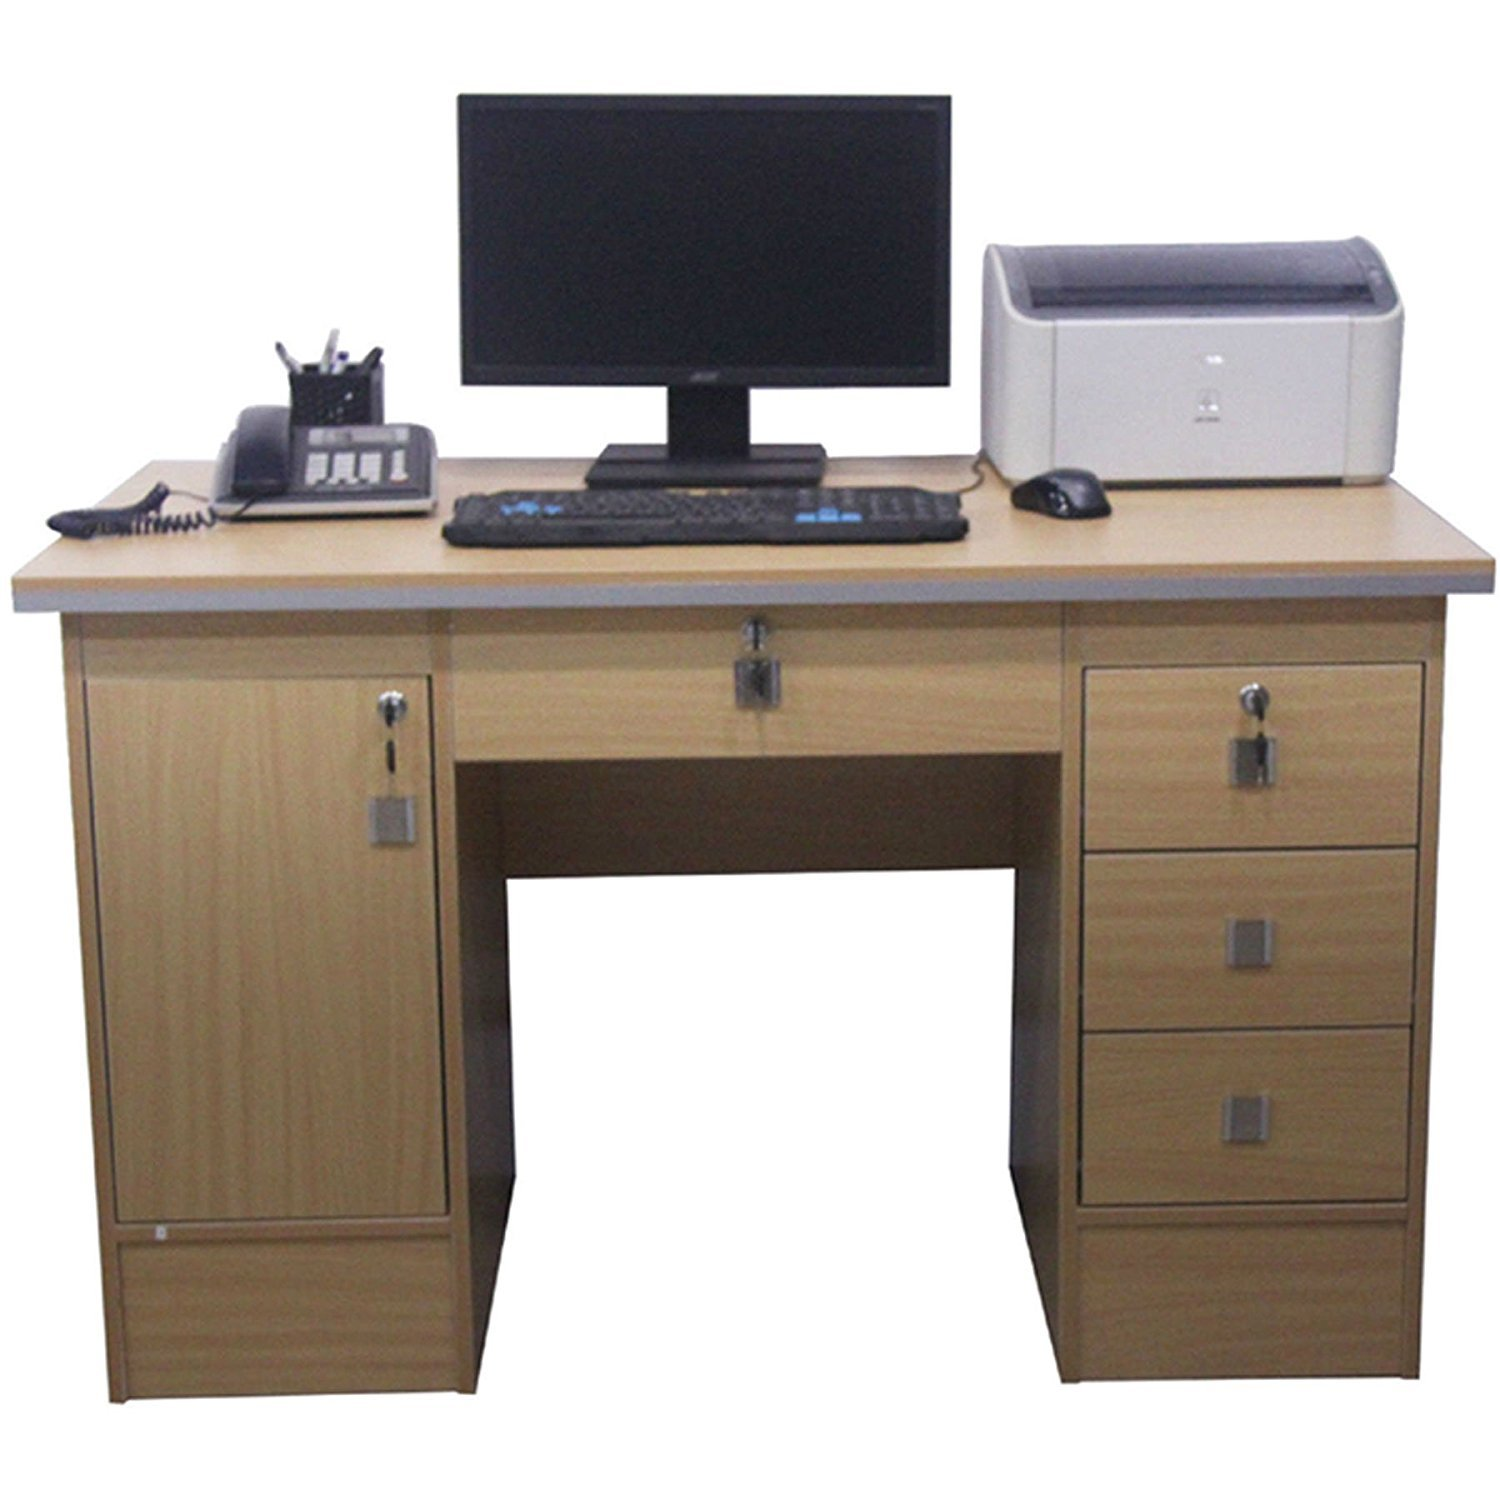 Computer Desk,Corner Computer Workstation,PC Table Home Office Furniture with 3 Locks. (Beech Desk 617/110) KSM